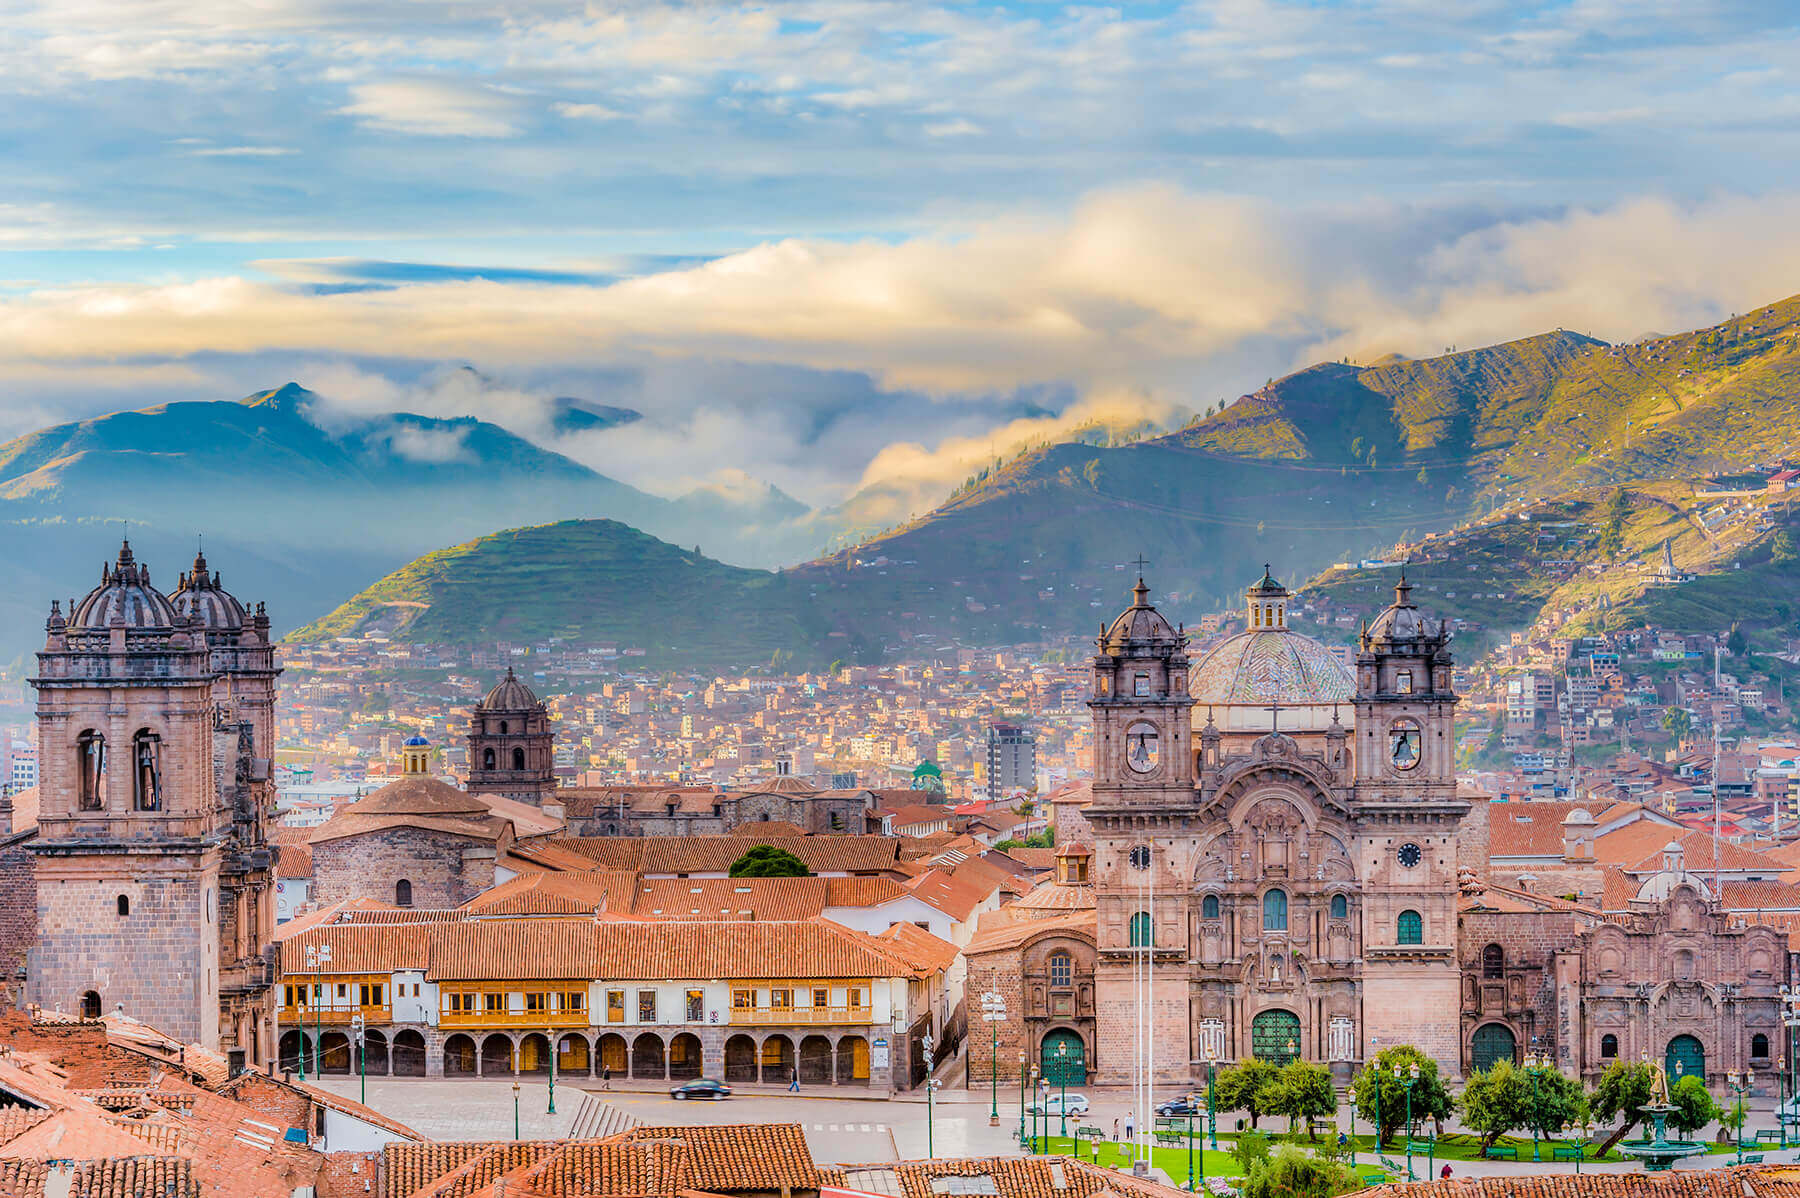 Sunrise at Plaza de Armas in Cuzco